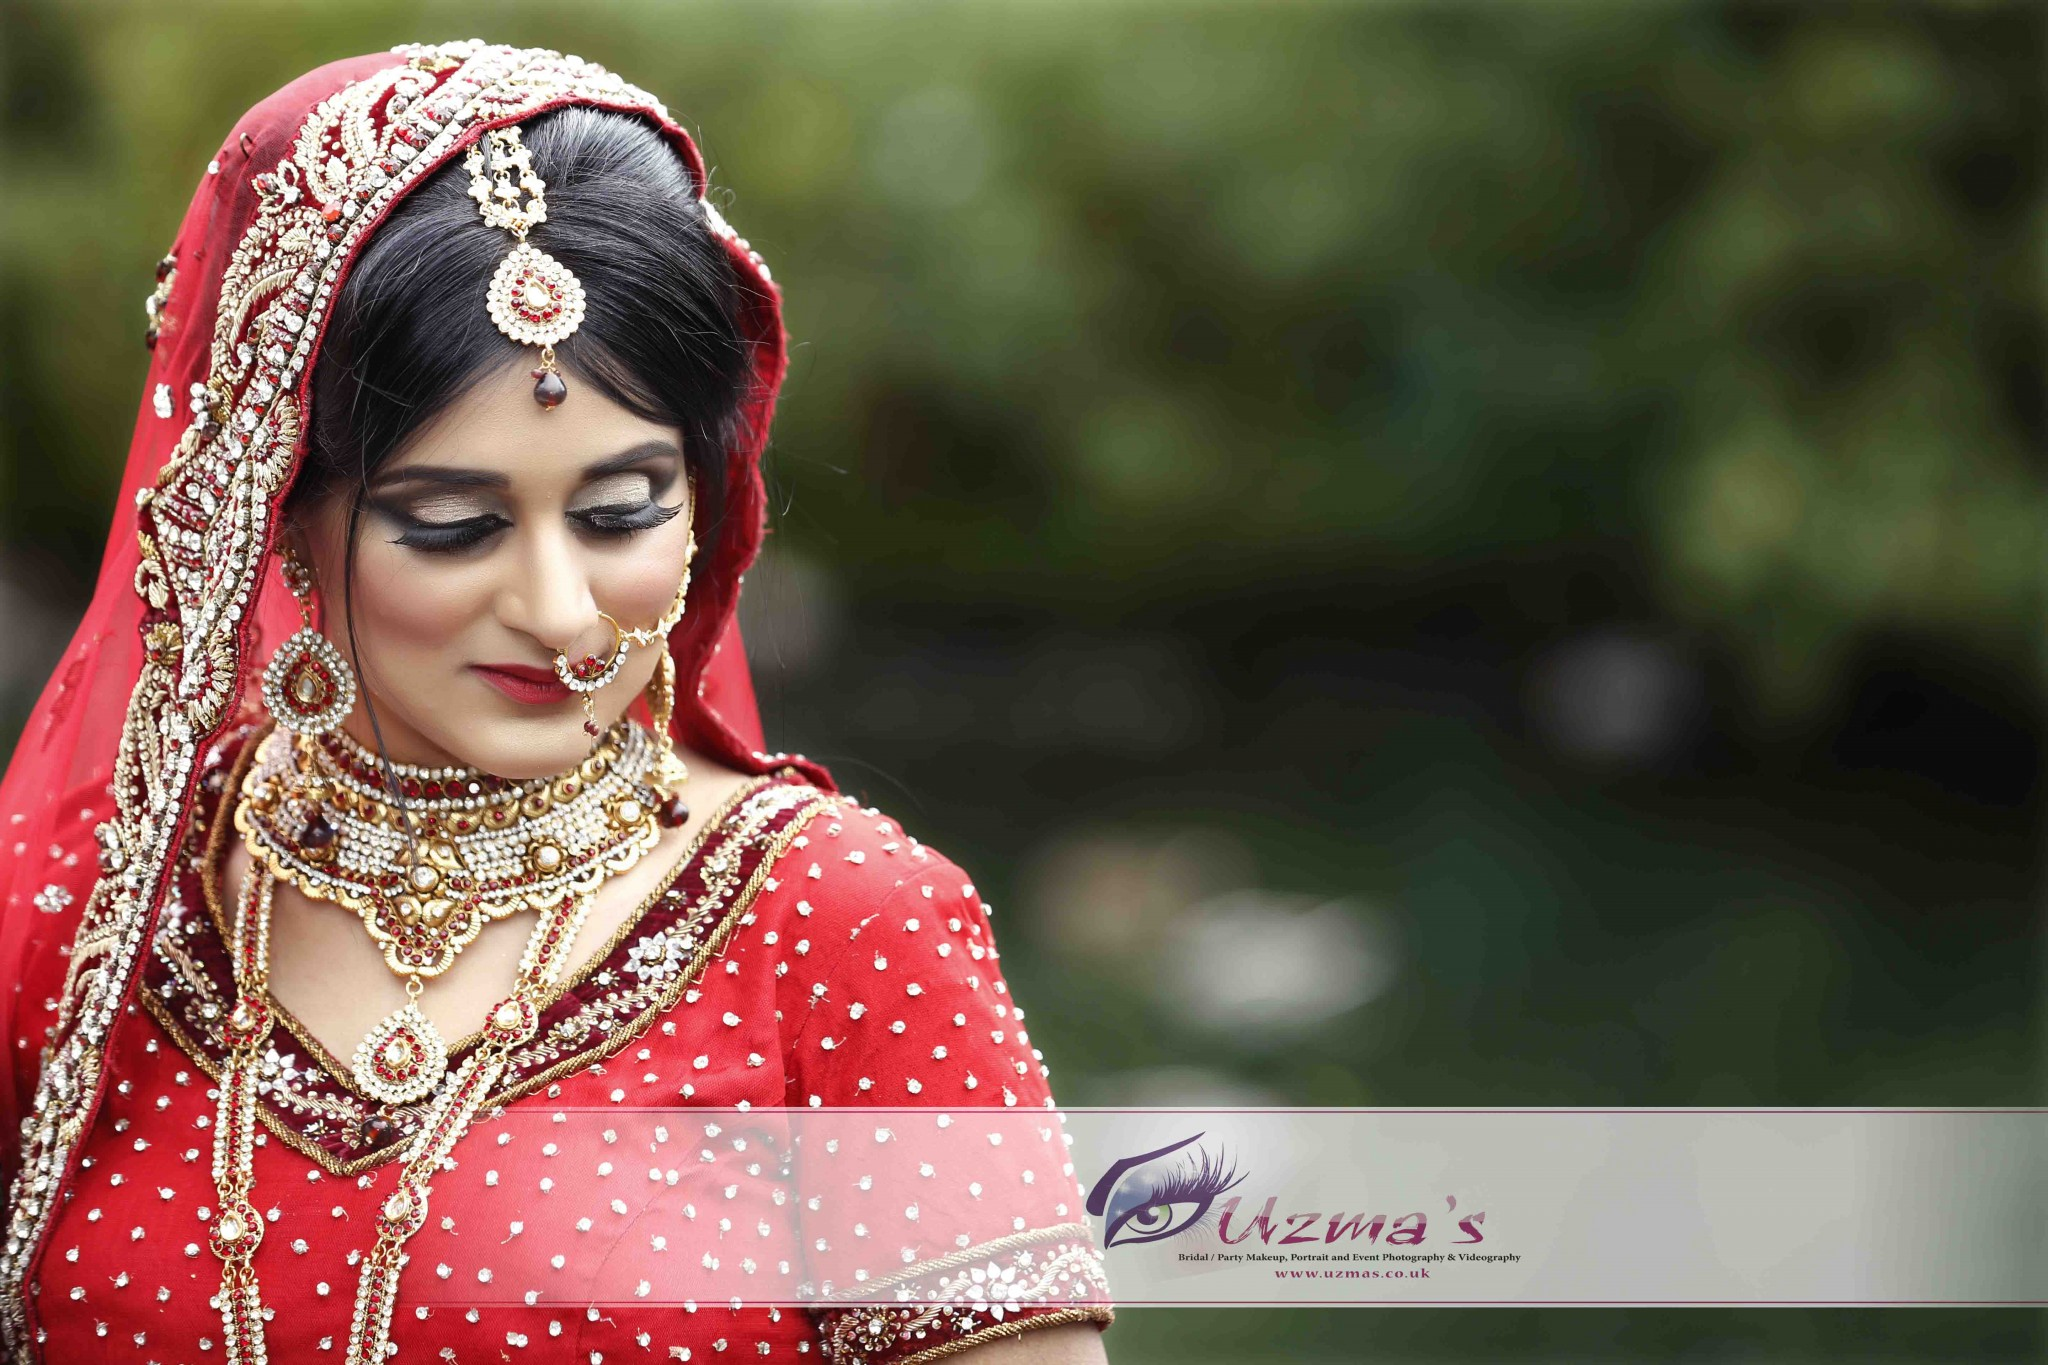 new asian bridal photography service launches in birmingham - asian